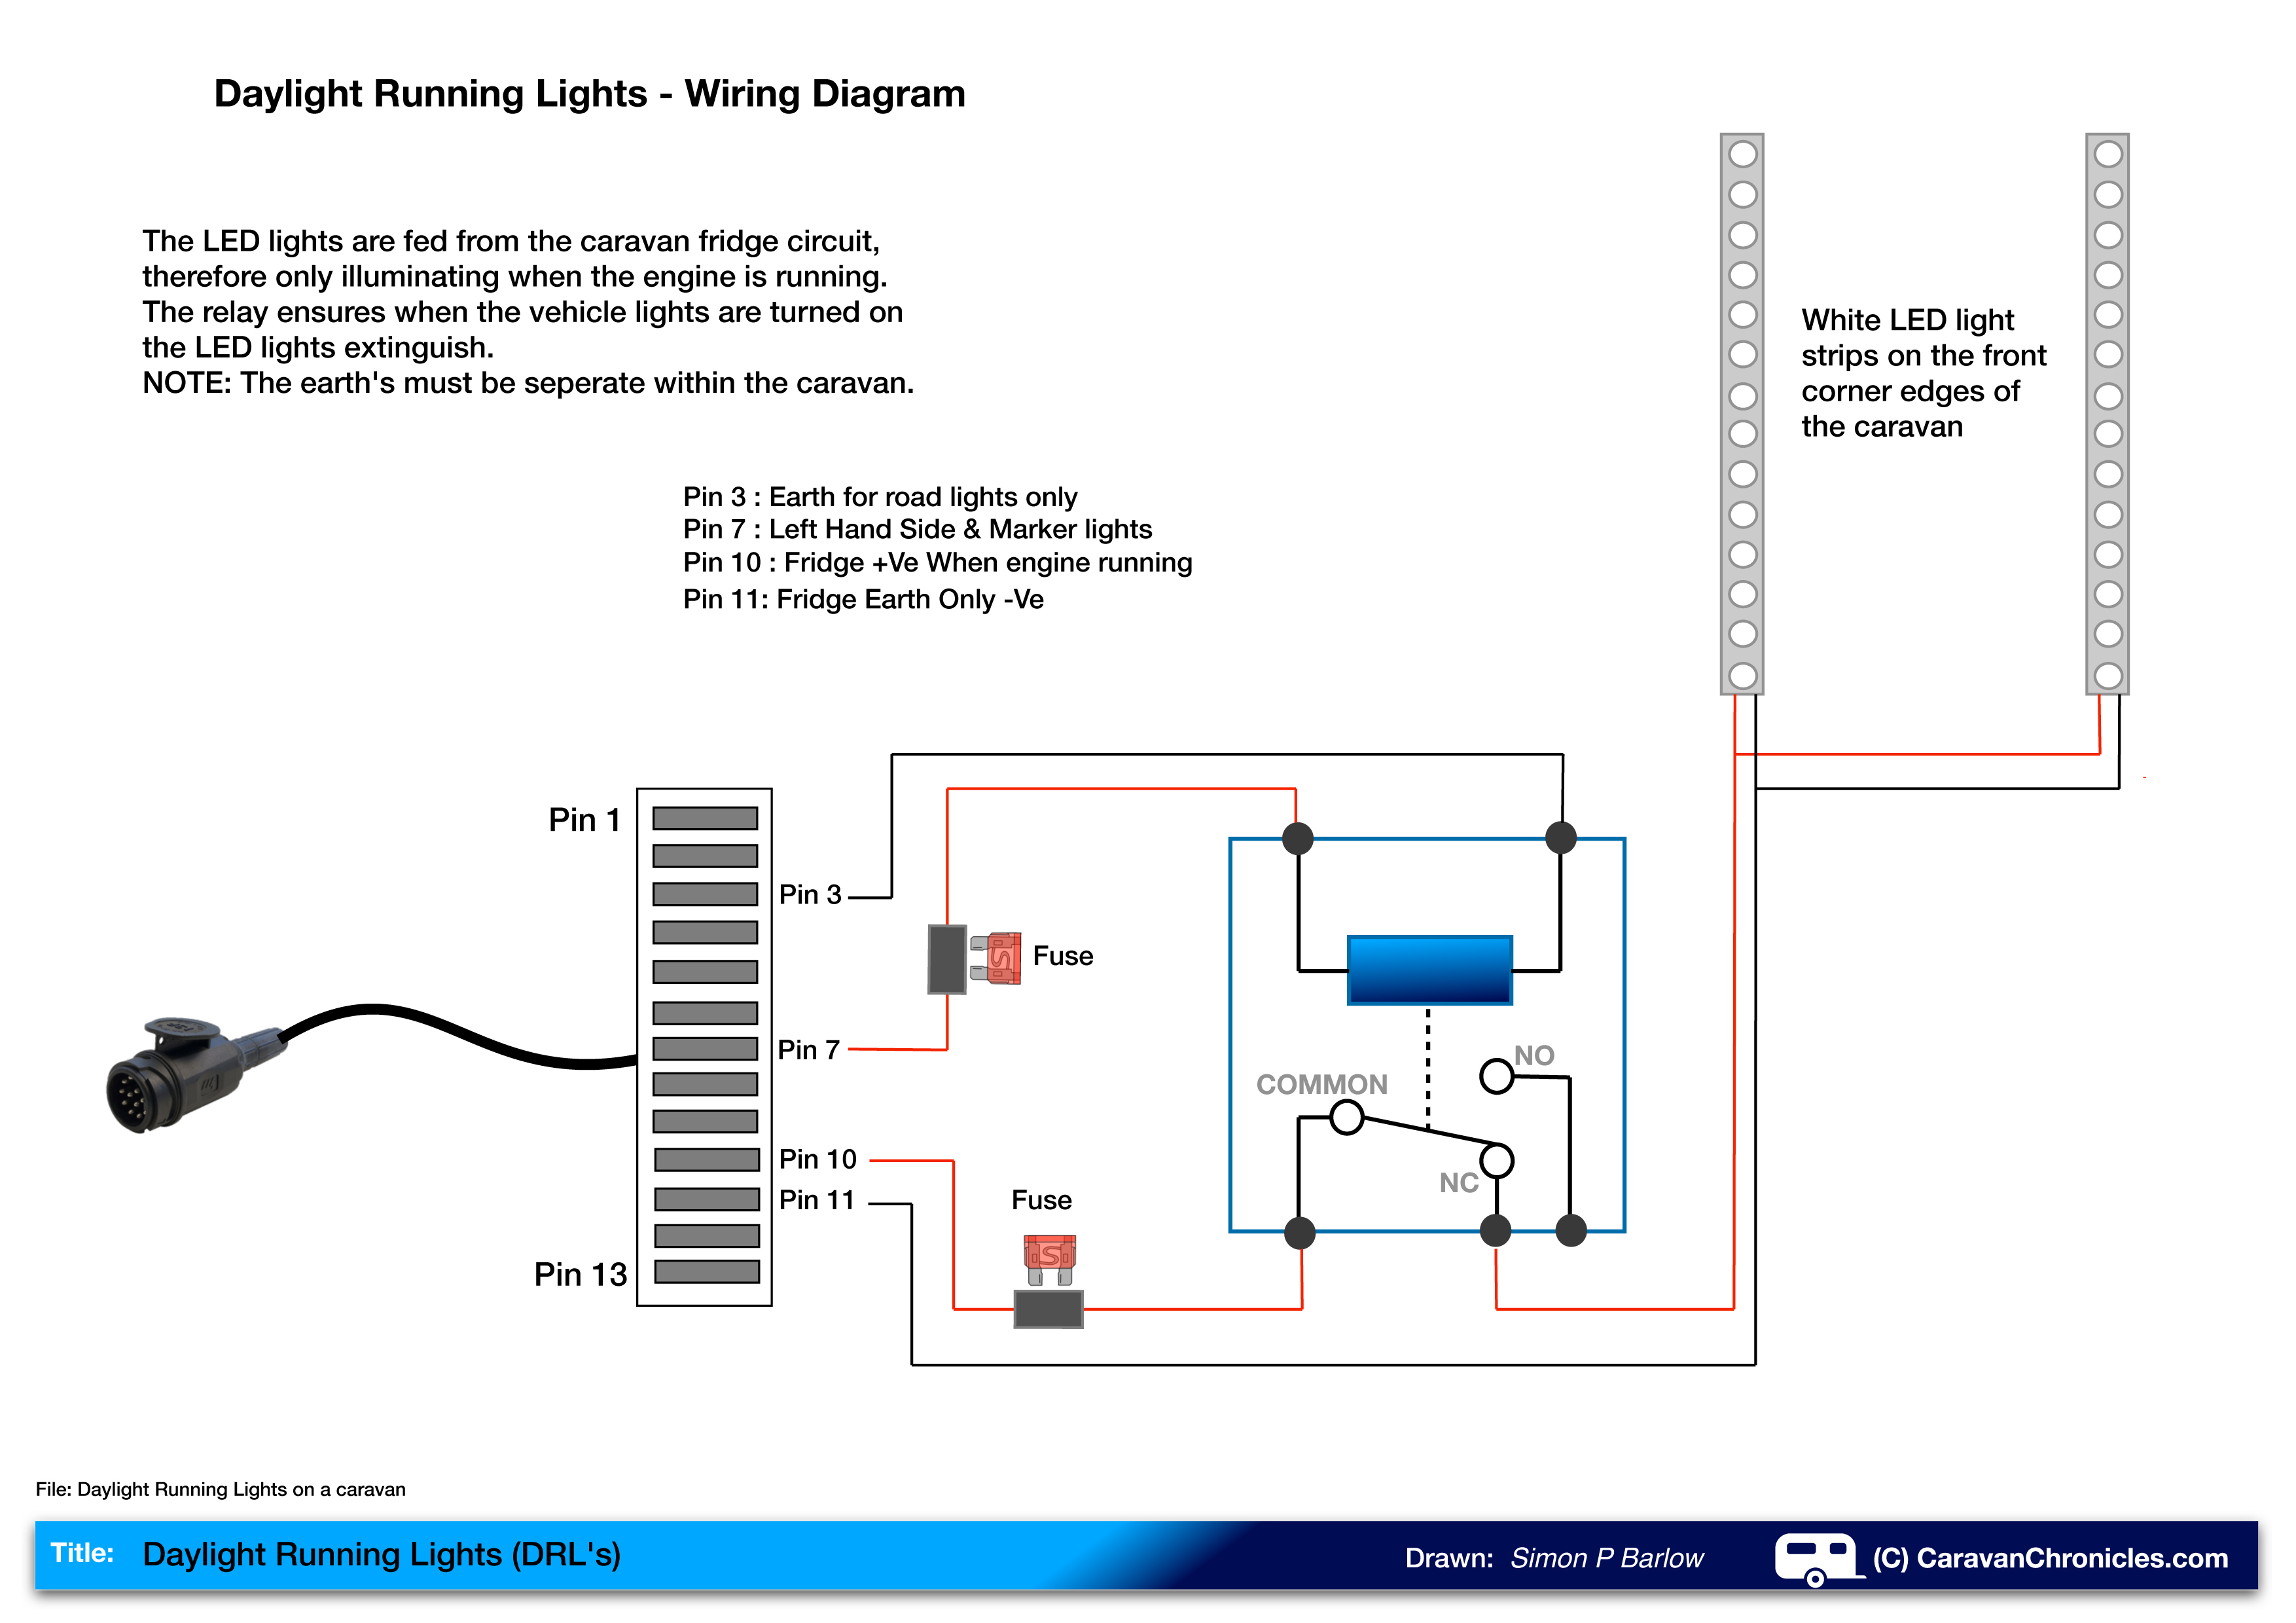 Wiring Daylight Running Lights  Drl U2019s  On A Caravan